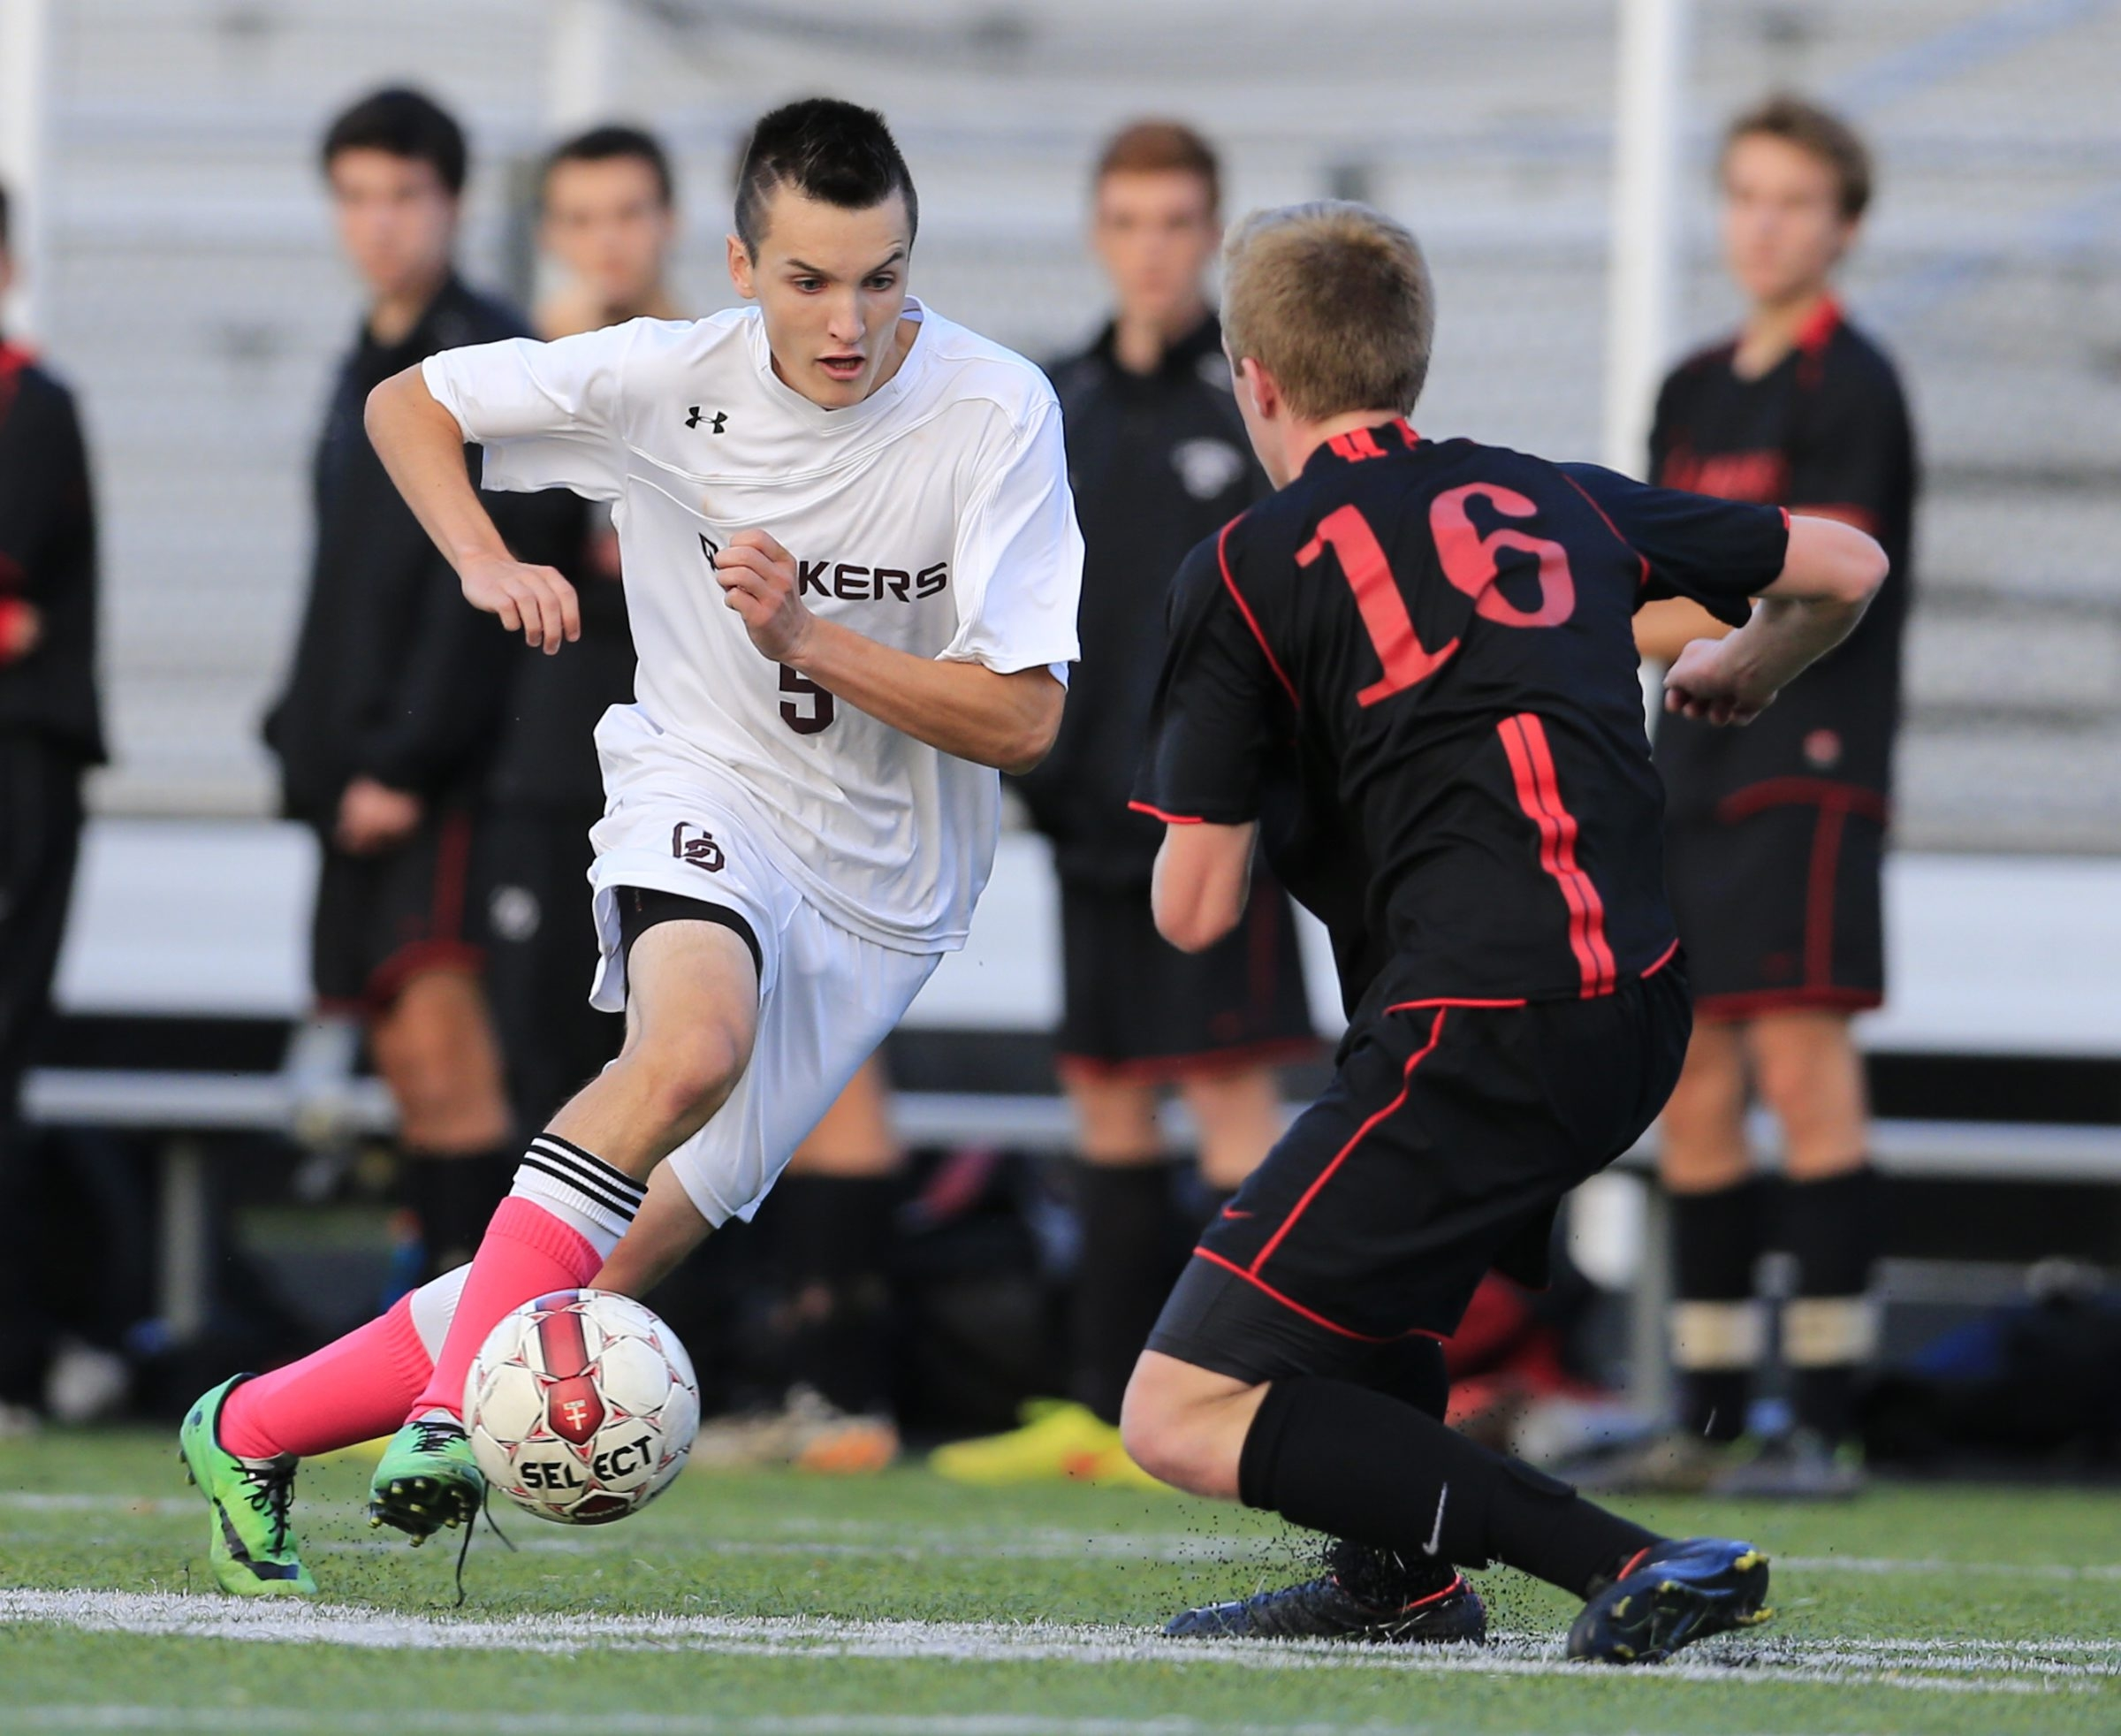 Orchard Park's Ryan McMaster (5) moves the ball against Clarence's Sean Palmer during the Quakers' 3-0 victory in the Class AA boys soccer semifinal at Hamburg.